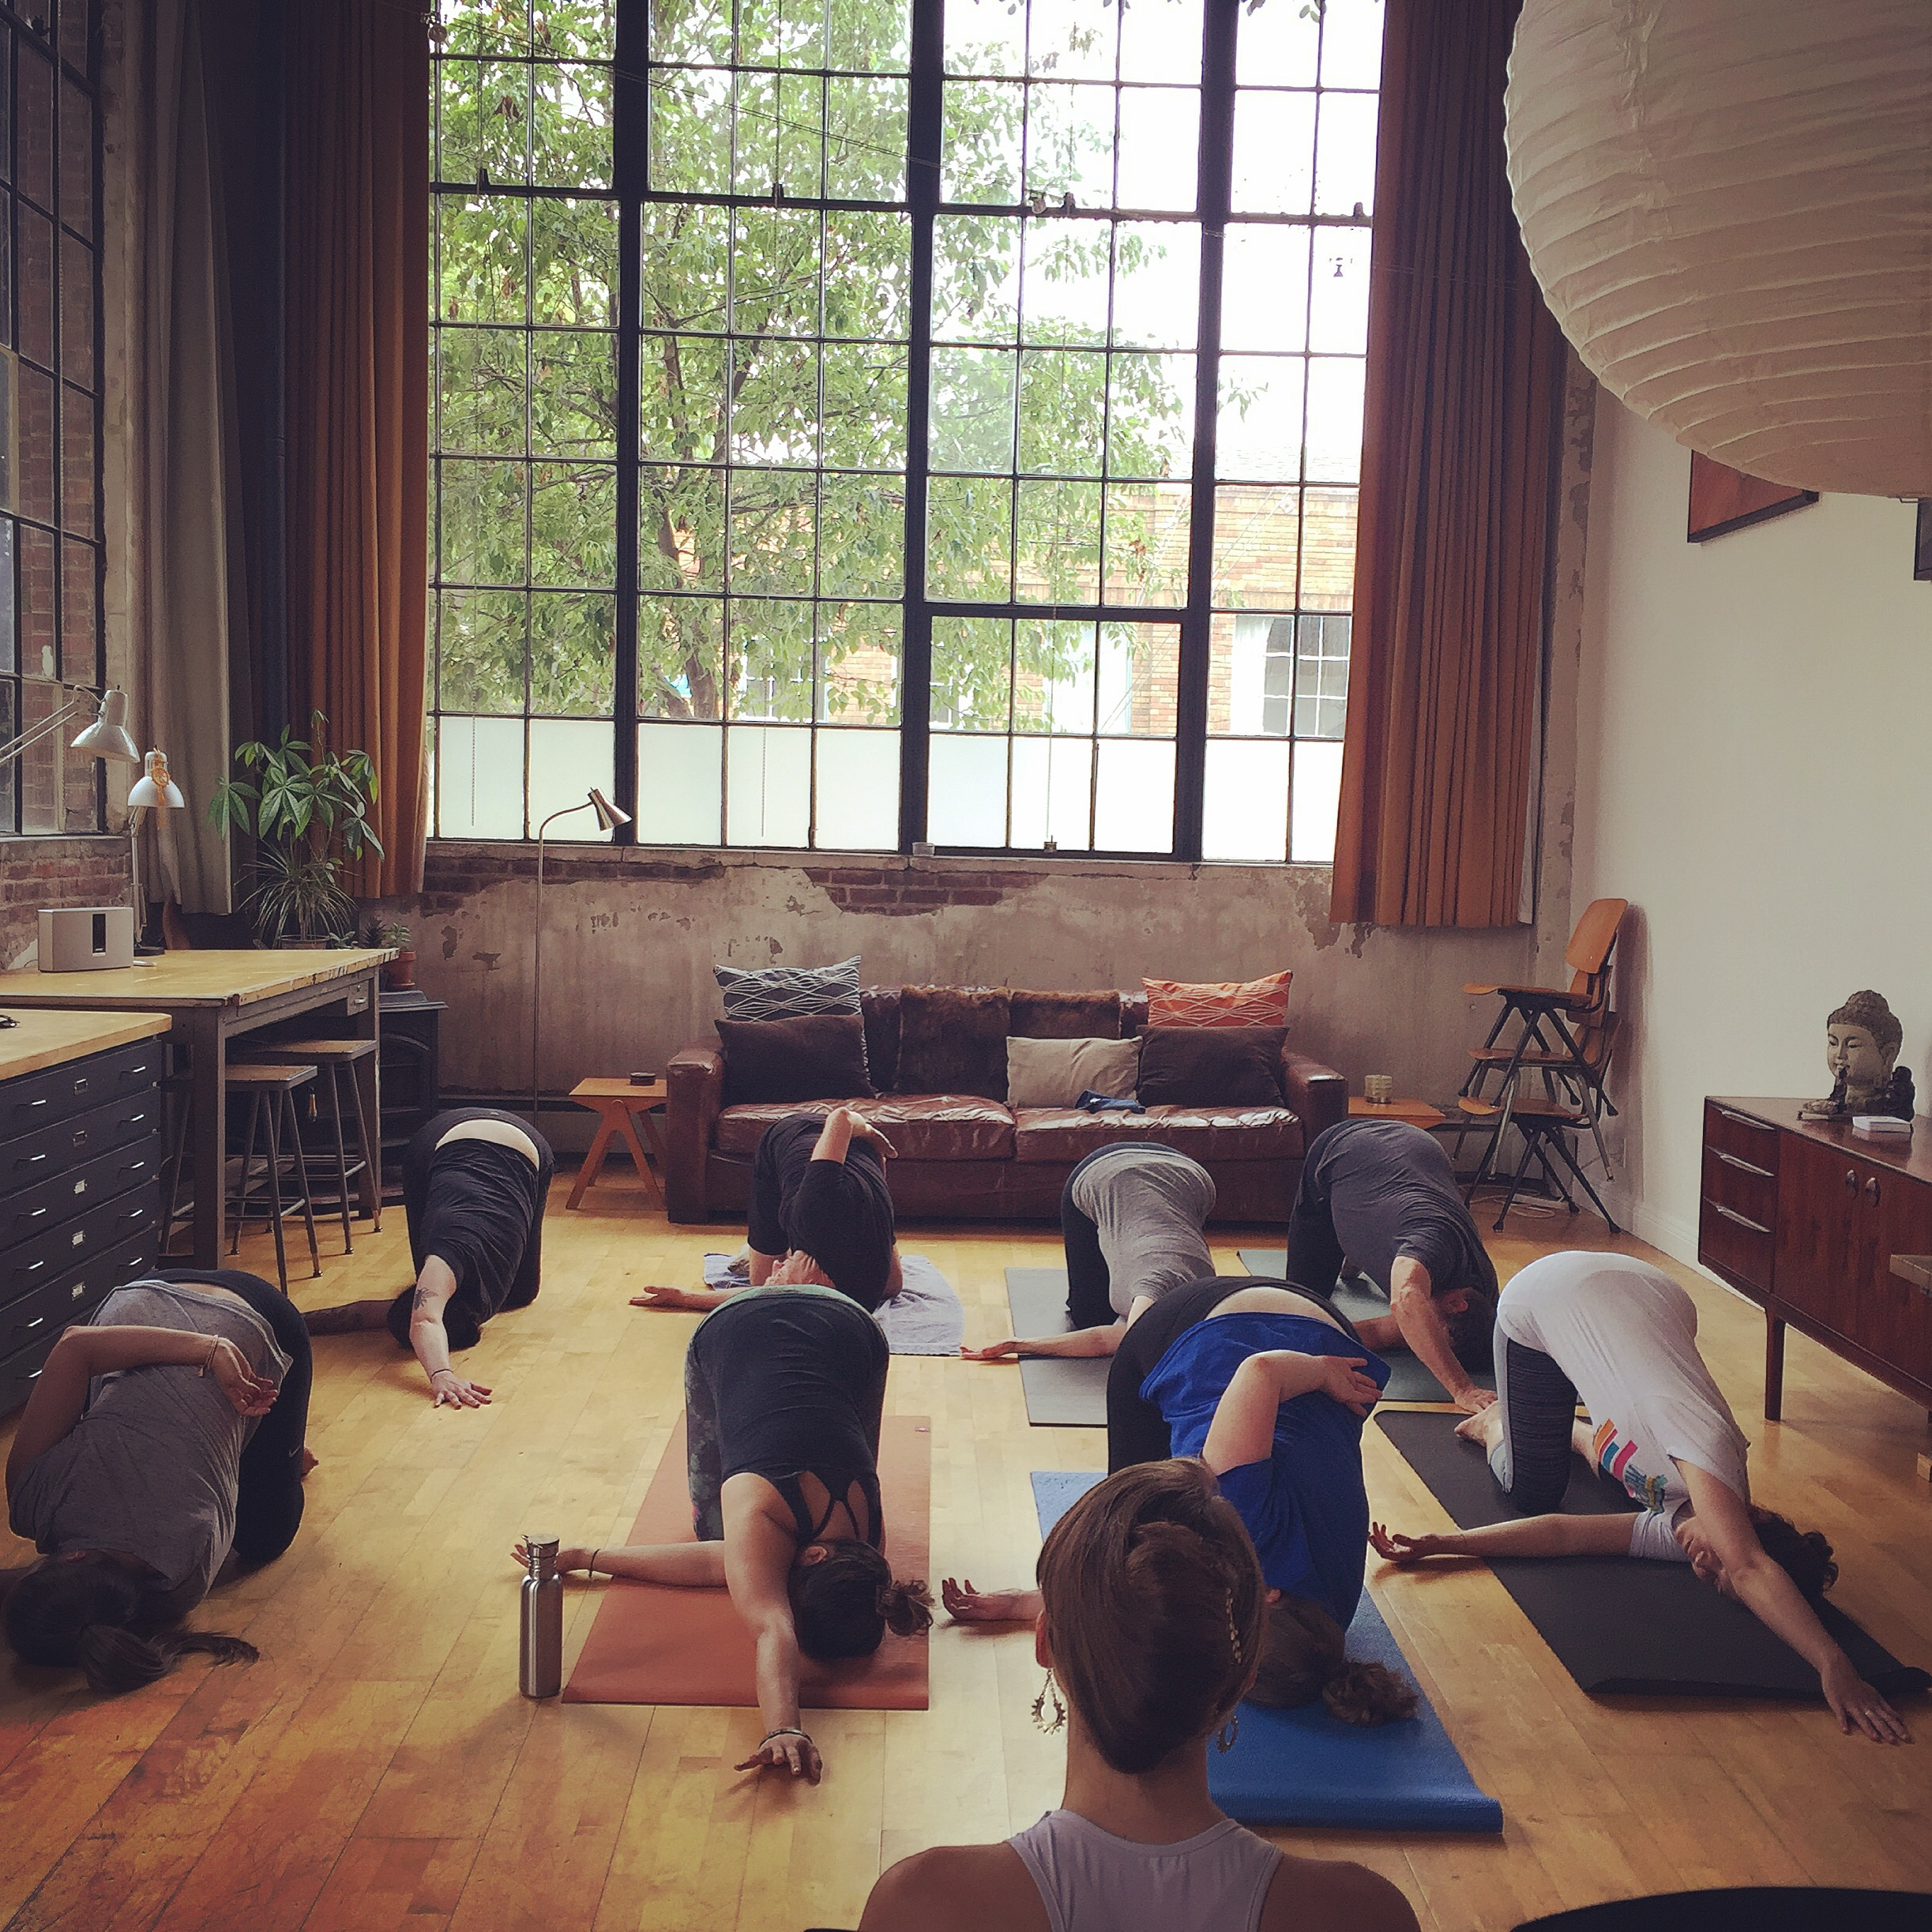 Yoga for your Event - Want yoga for your office, wedding, girls weekend, or other event?Contact Sierra for more info!